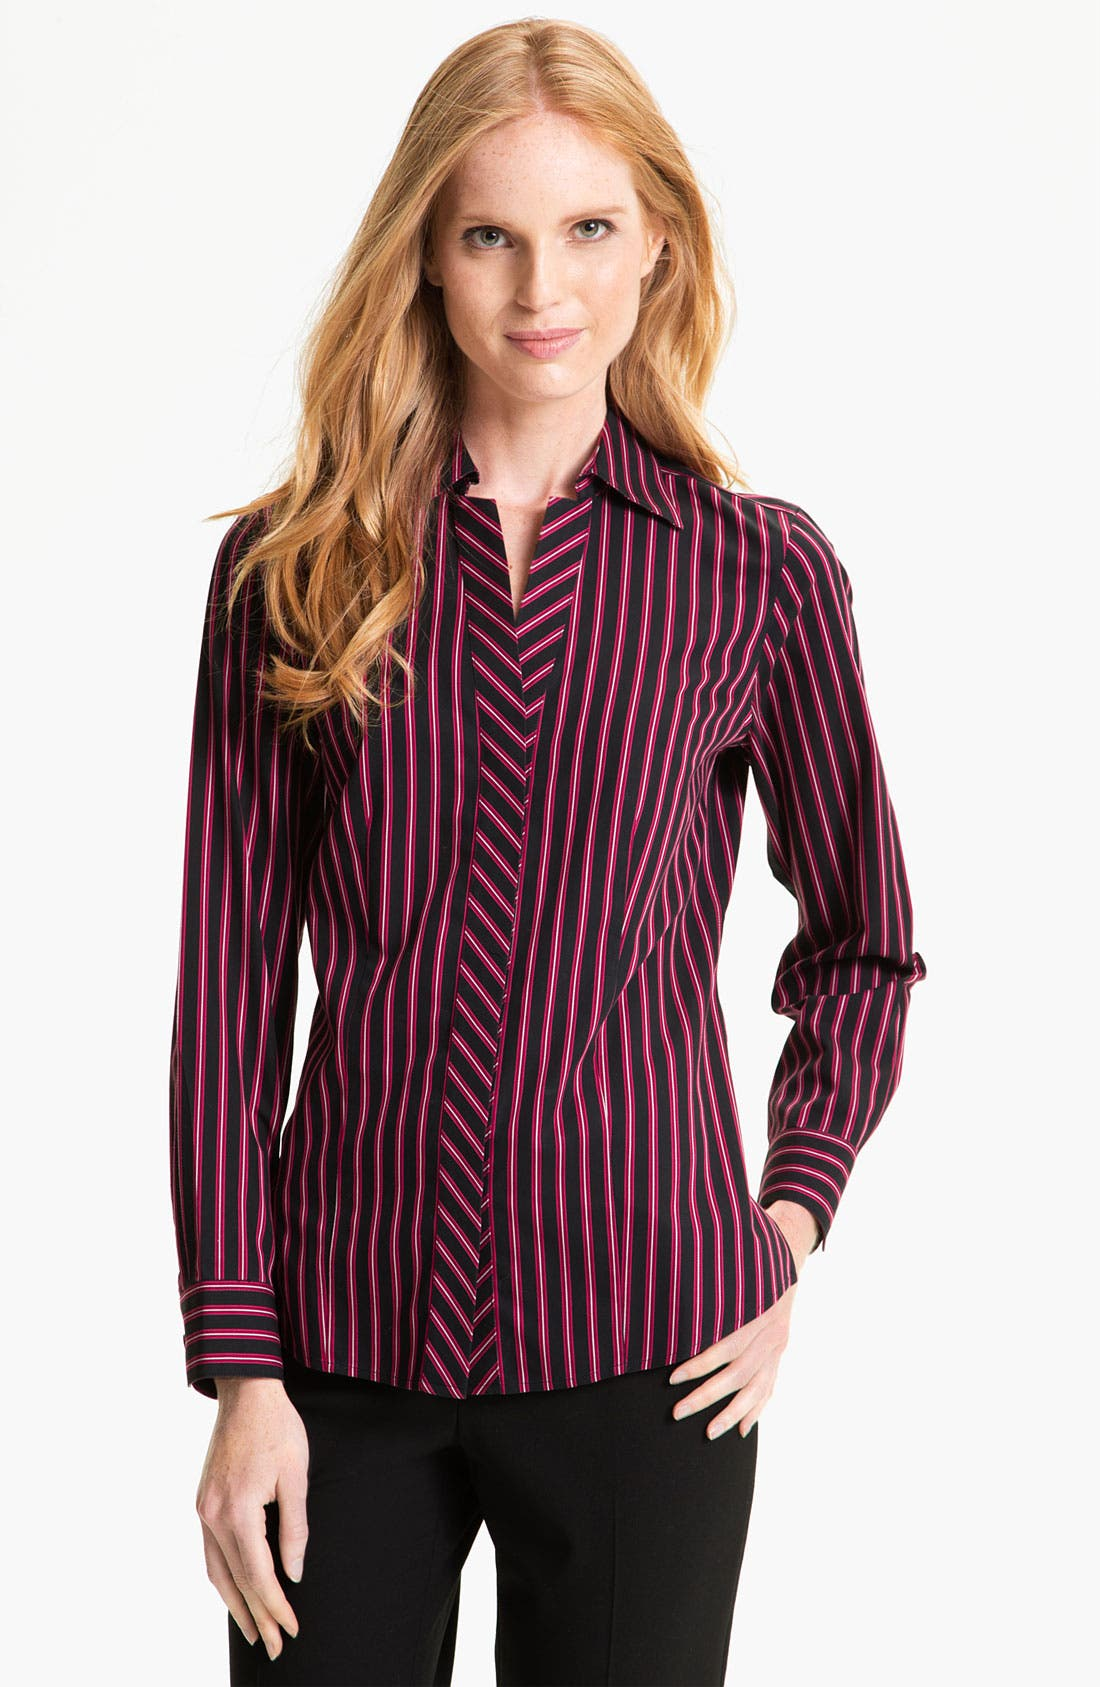 Alternate Image 1 Selected - Foxcroft Satin Stripe Shirt (Petite)